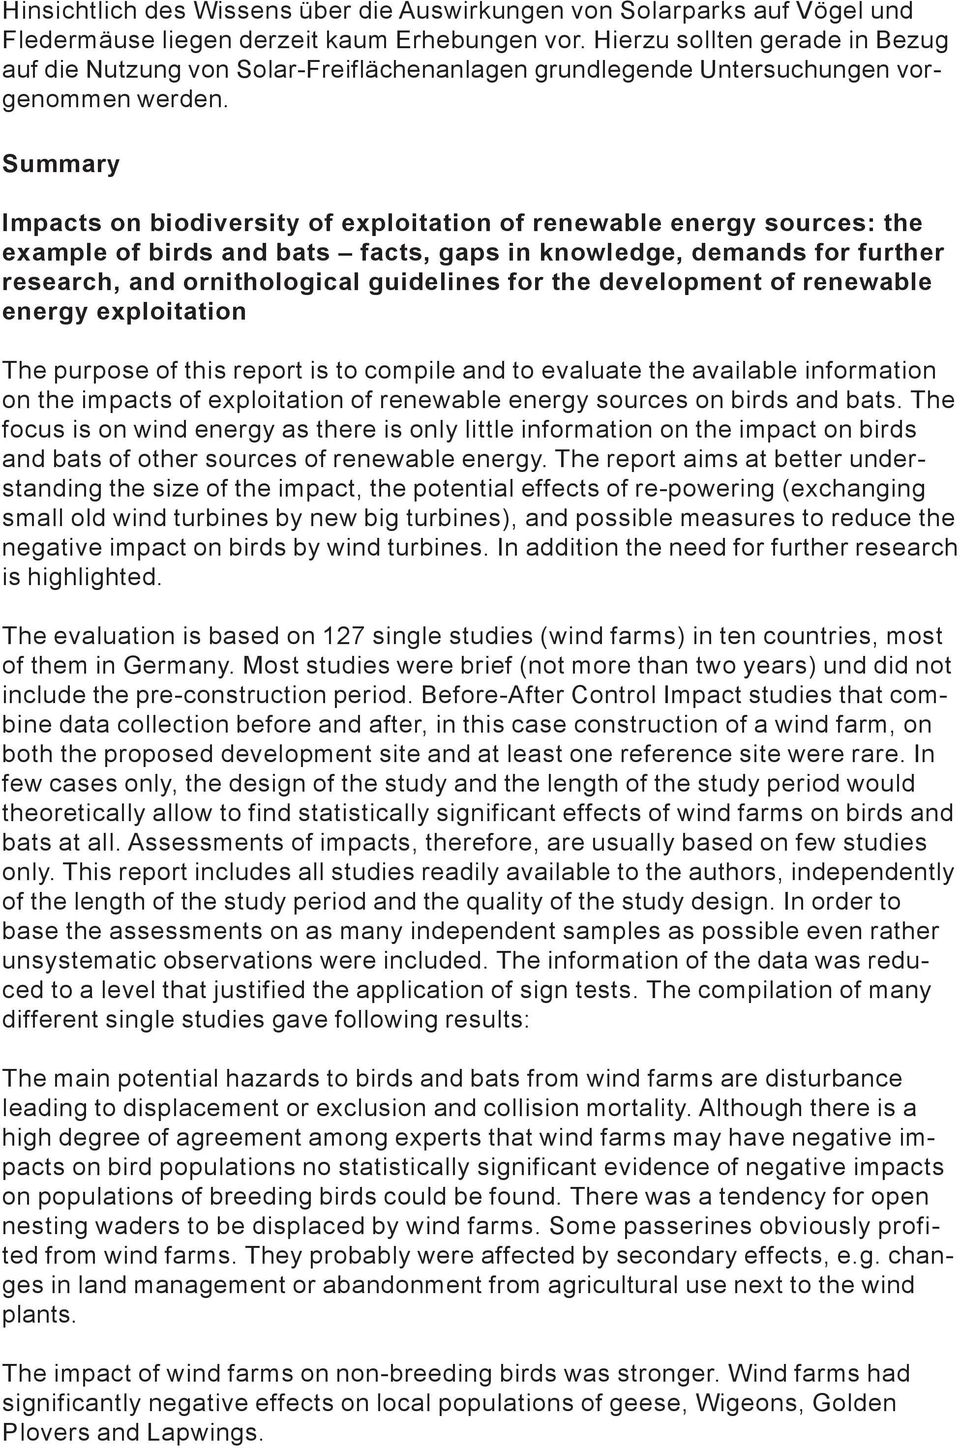 Summary Impacts on biodiversity of exploitation of renewable energy sources: the example of birds and bats facts, gaps in knowledge, demands for further research, and ornithological guidelines for